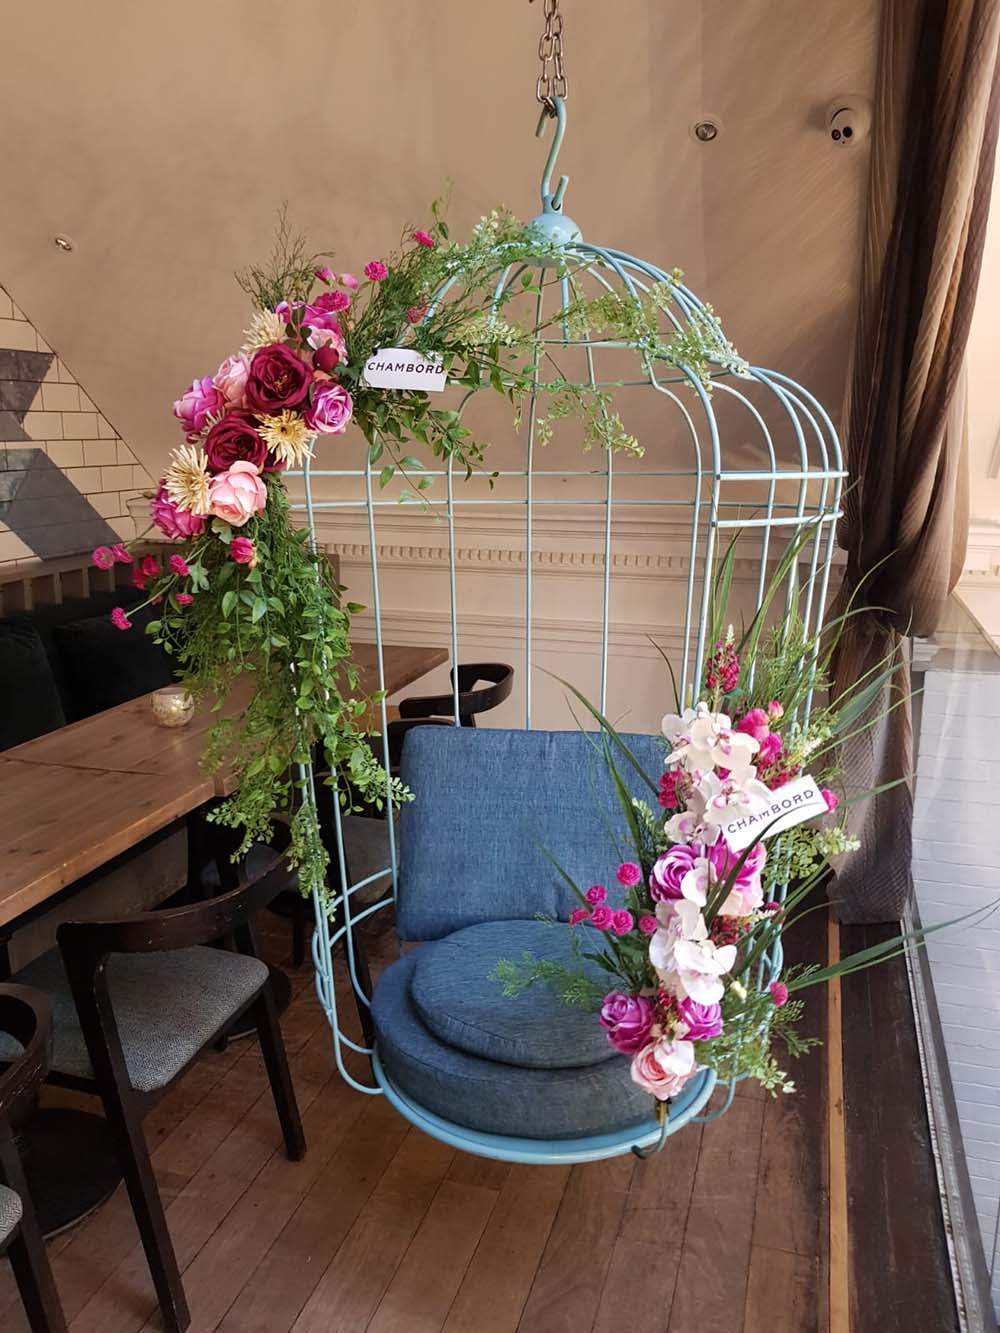 A hanging birdcage seat in Hummingbird Glasgow adorned with artificial floral displays and Chambord branding